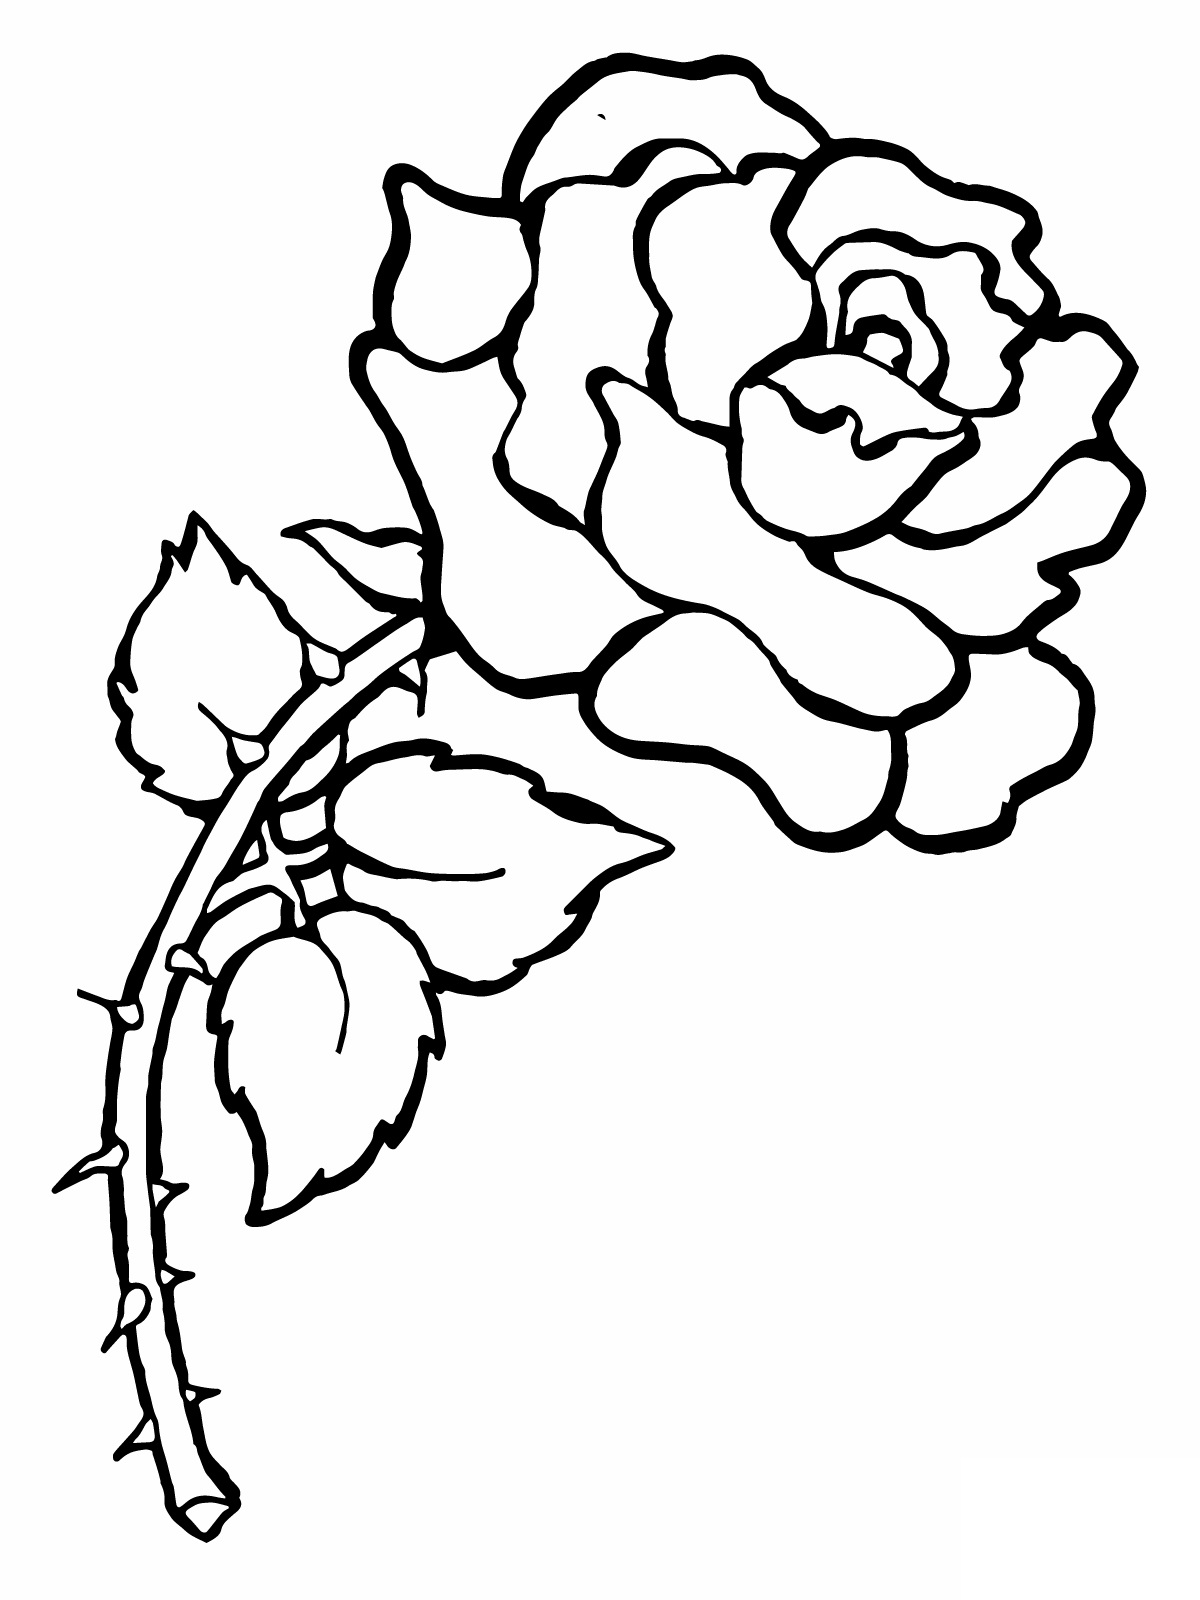 Coloring Pages For Kids Printable : Free printable roses coloring pages for kids